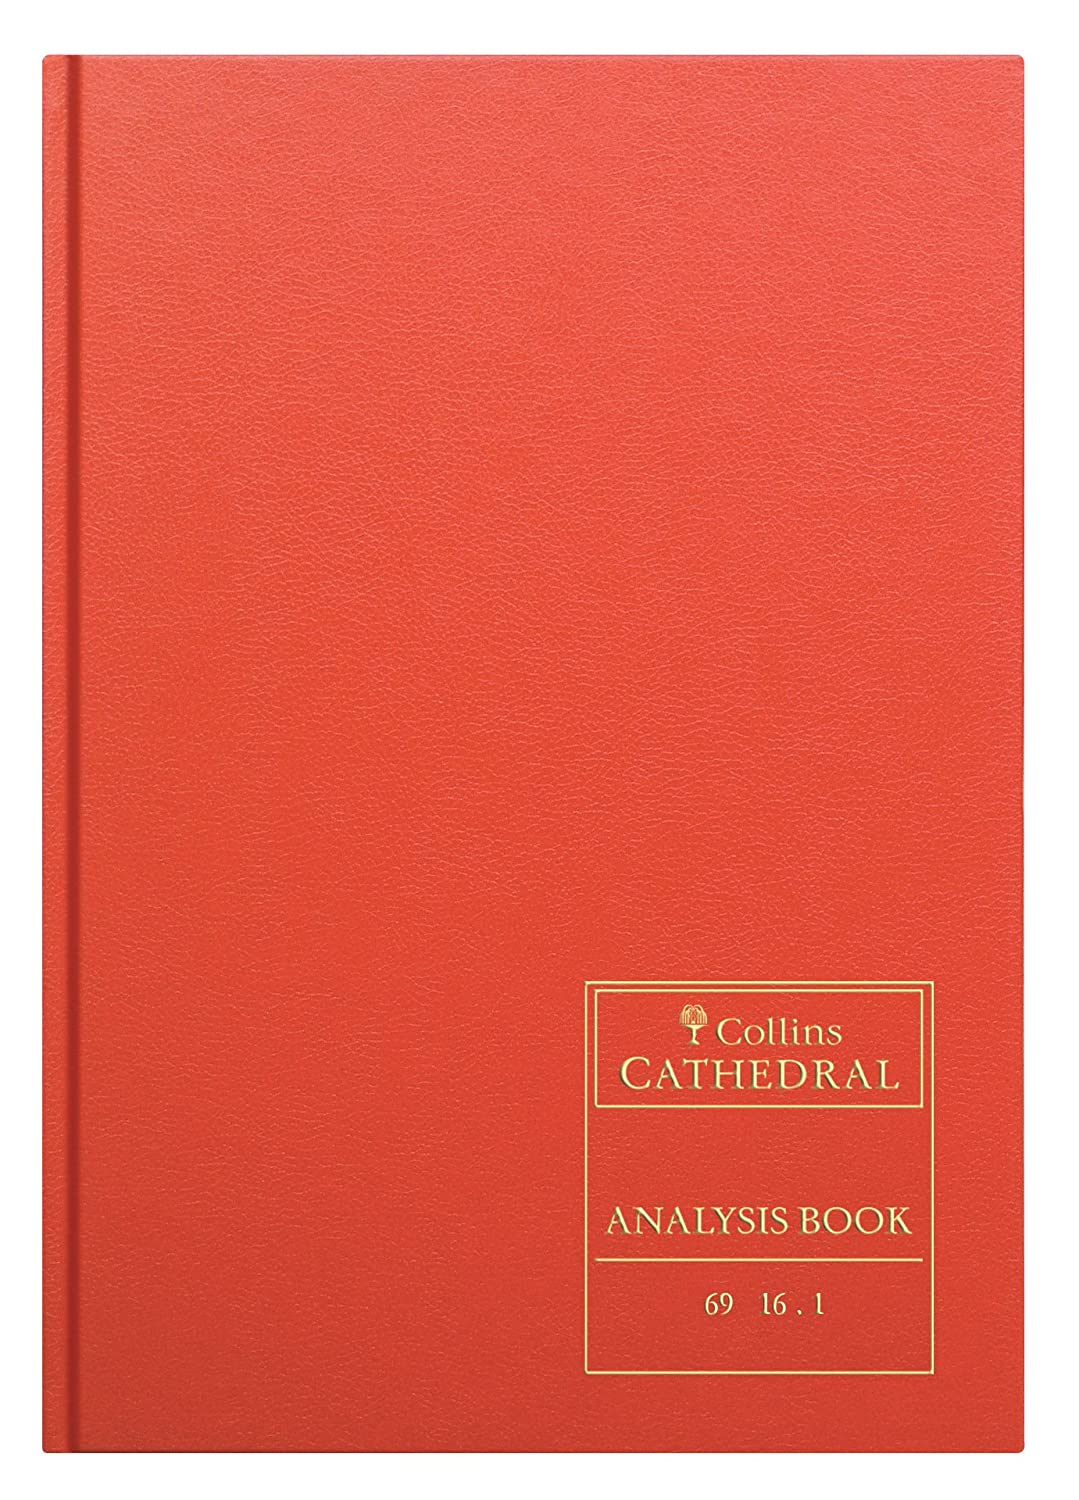 Account Books & Journals Collins Cathedral Analysis Book 96 Pages 69 Series 69/16.1